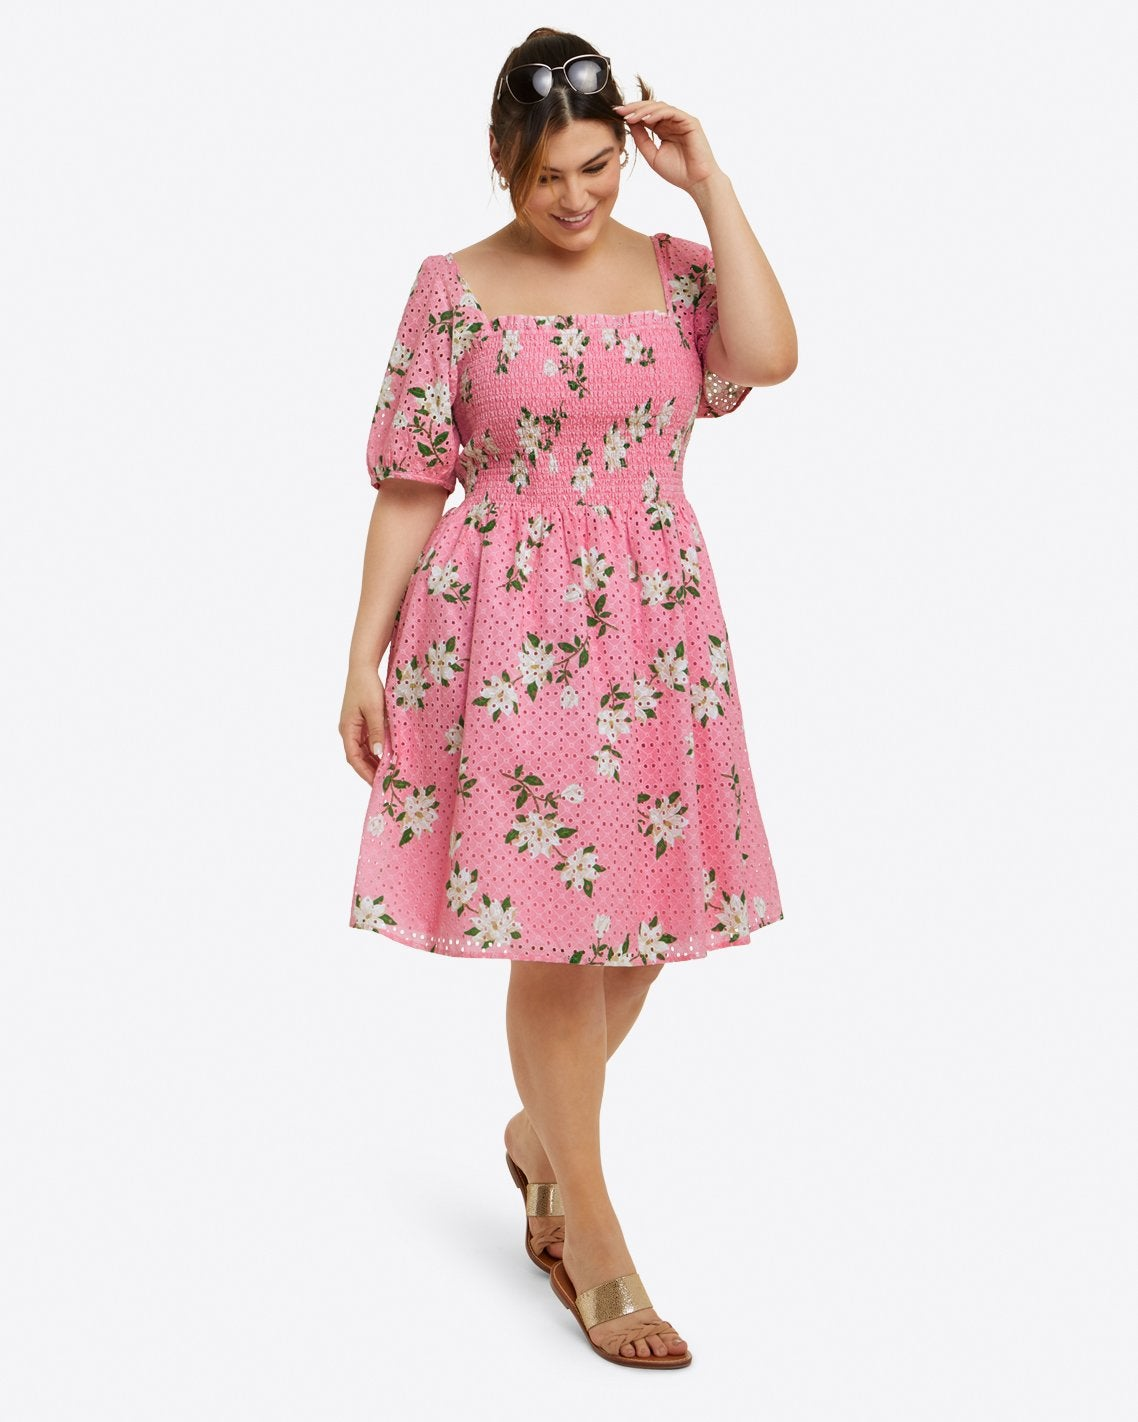 model in pink and white floral knee-length dress with elbow sleeves and a square neck